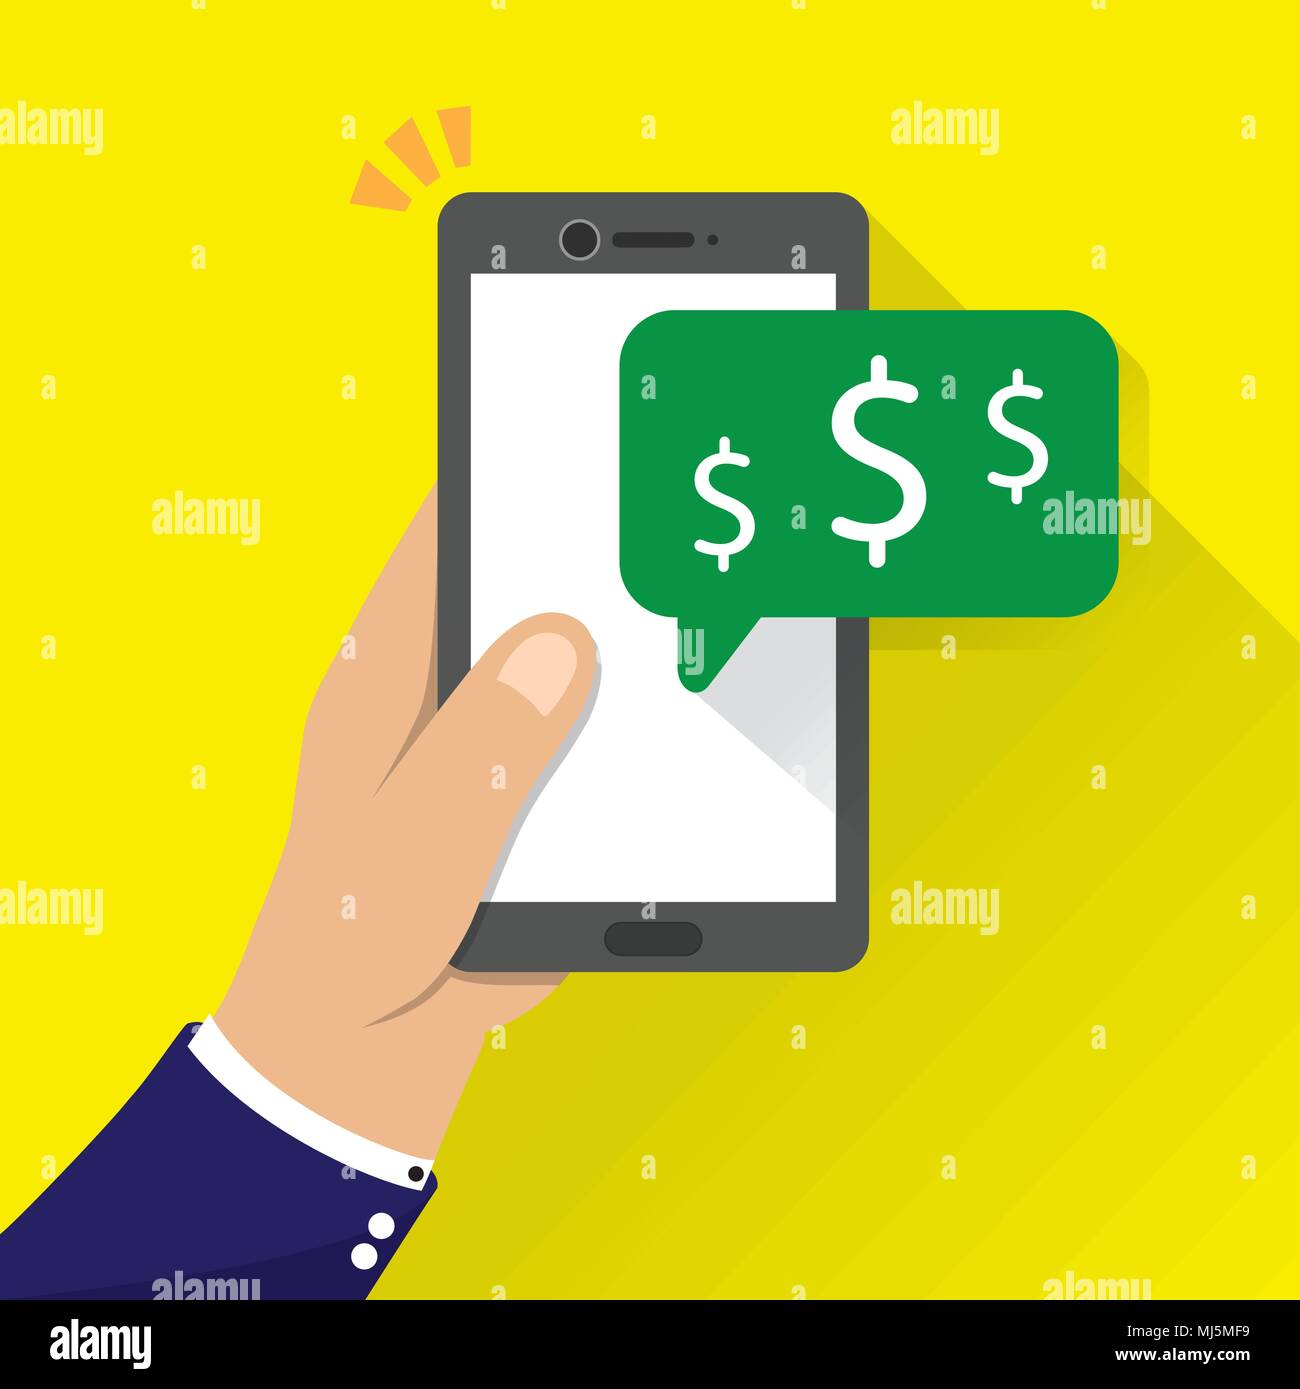 hand holding phone with money icon notification vector illustration. sending and receiving money with mobile phones. - Stock Vector